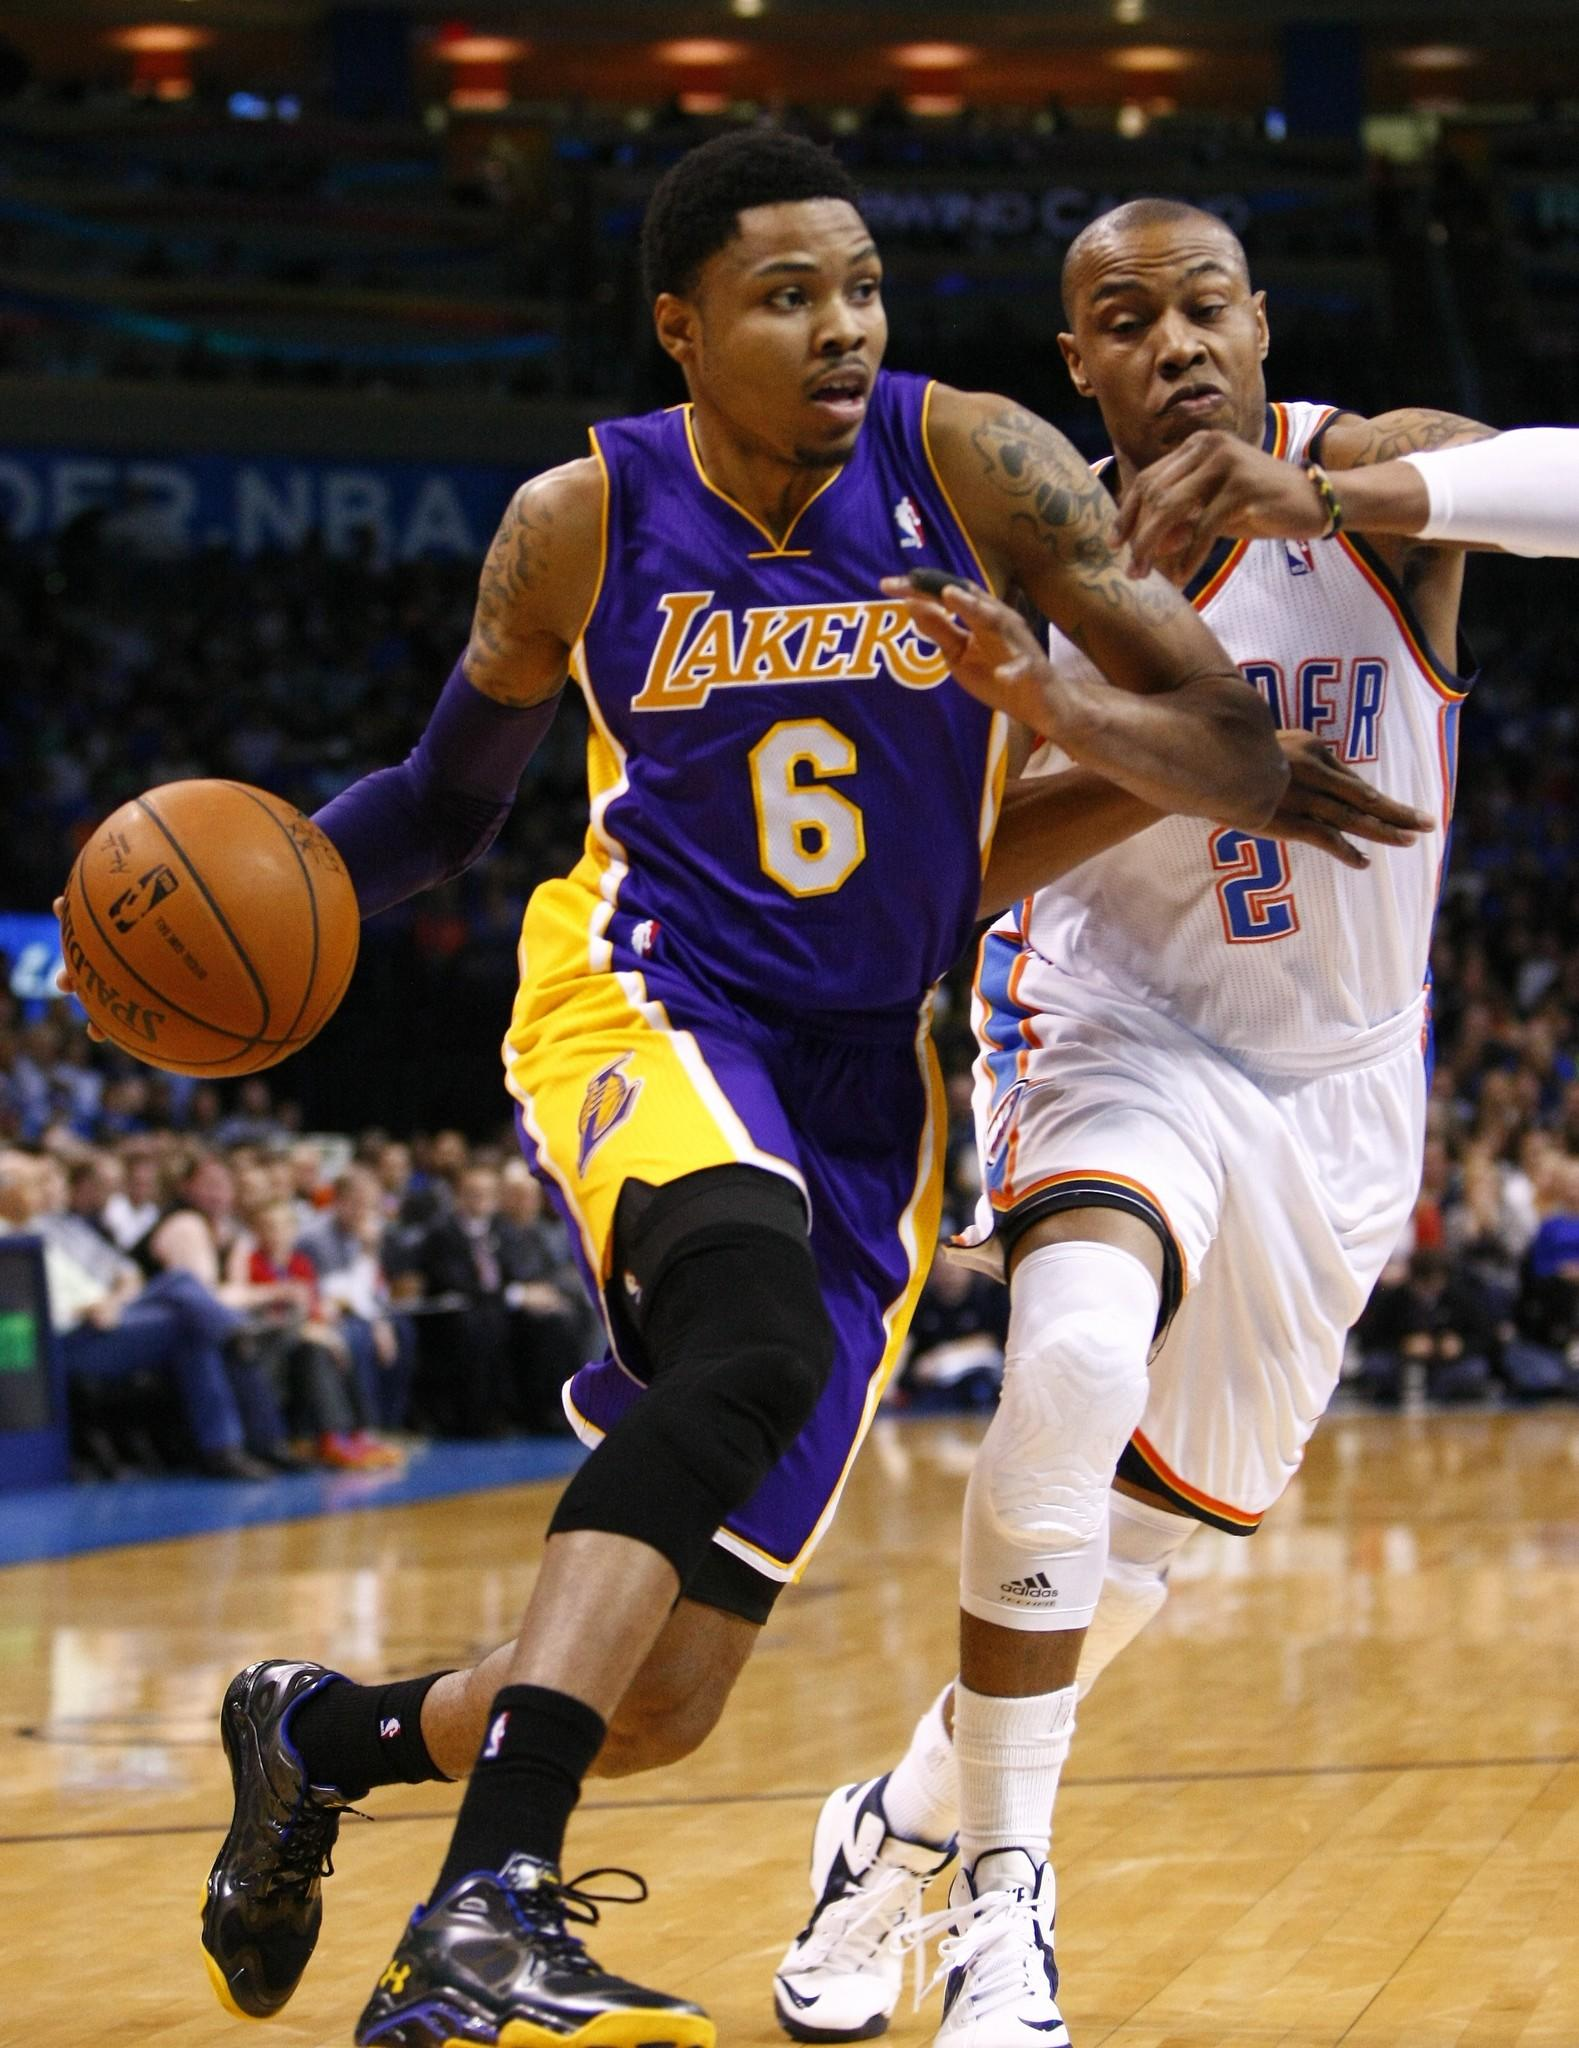 Kent Bazemore is defended by Oklahoma's Caron Butler during the first half of the Lakers' game against the Thunder at Chesapeake Energy Arena.